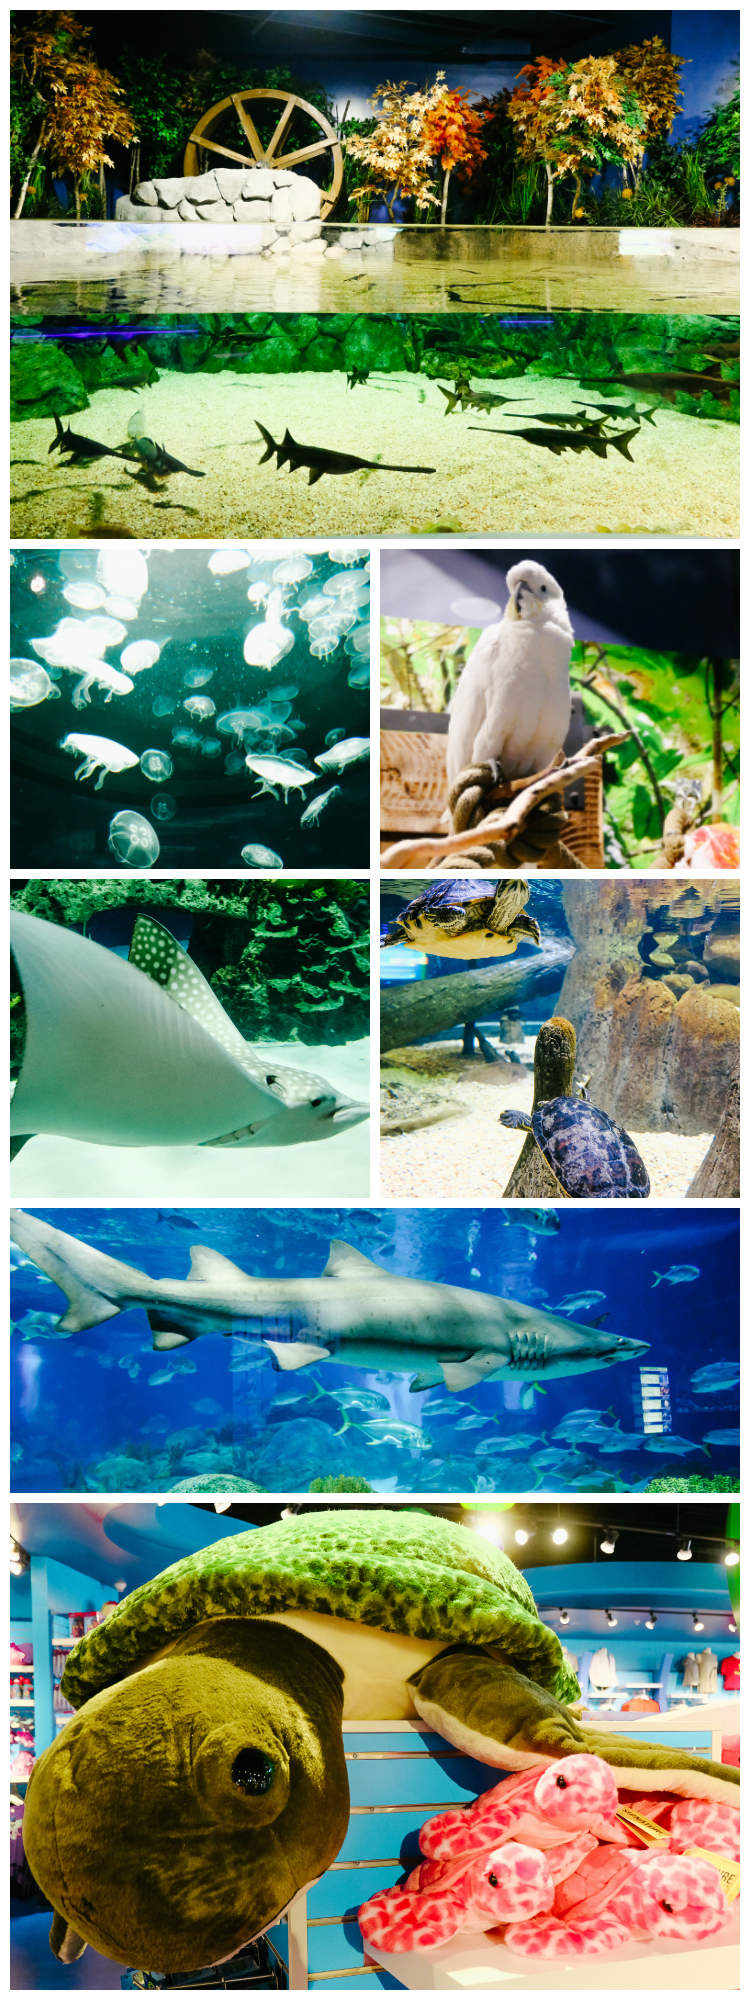 Visiting Arizona: Odysea Aquarium in Scottsdale, AZ